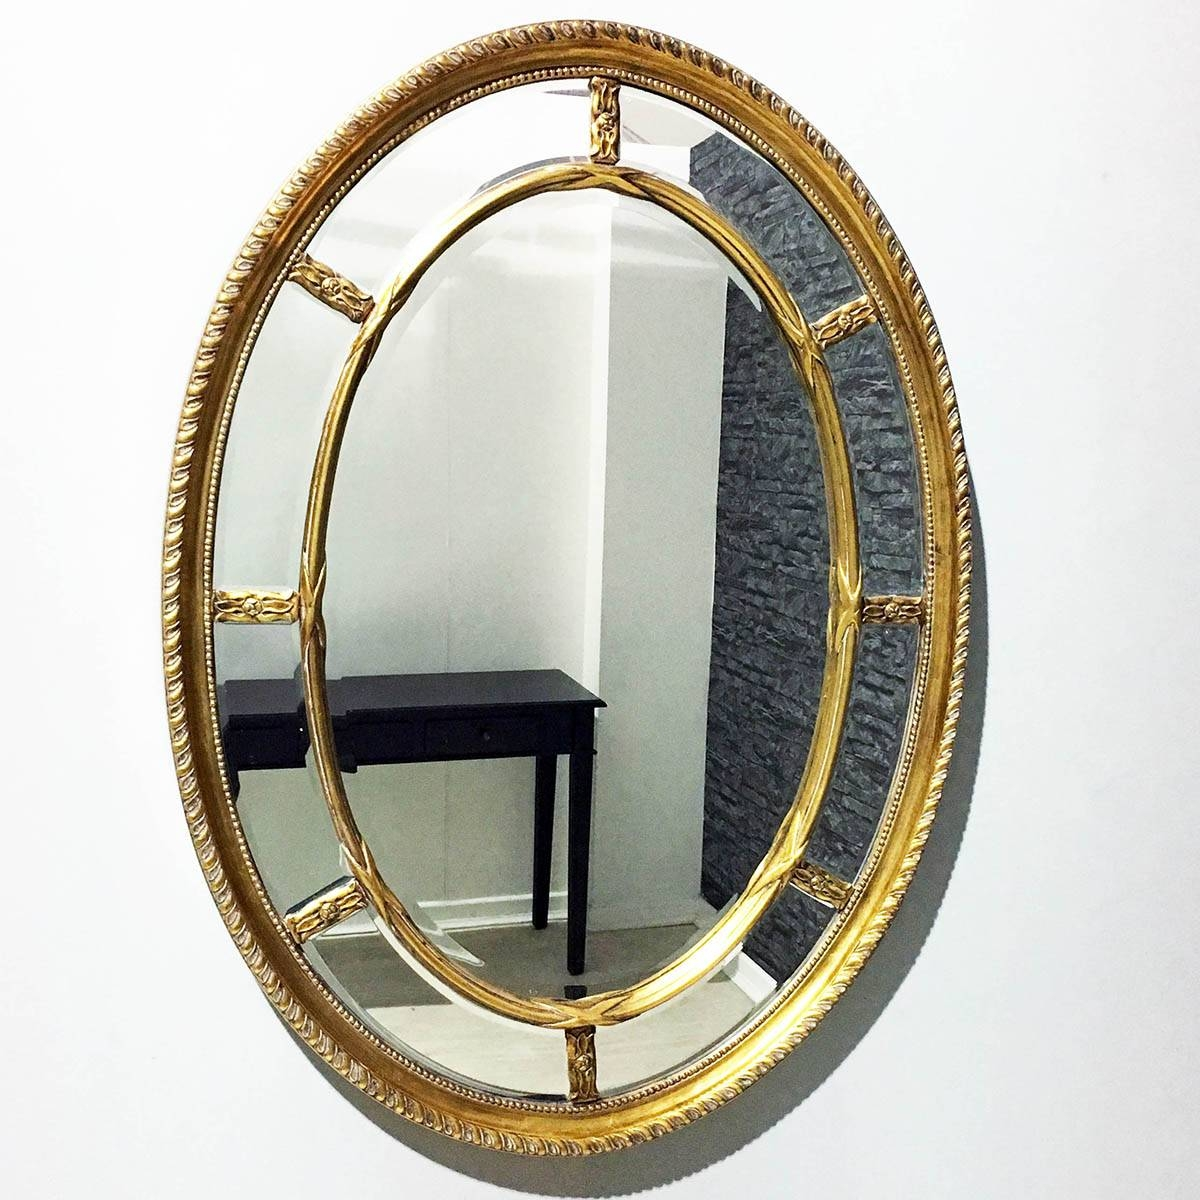 Oval Mirrors | Oval Wall Mirrors | Exclusive Mirrors within Triple Oval Wall Mirrors (Image 16 of 25)